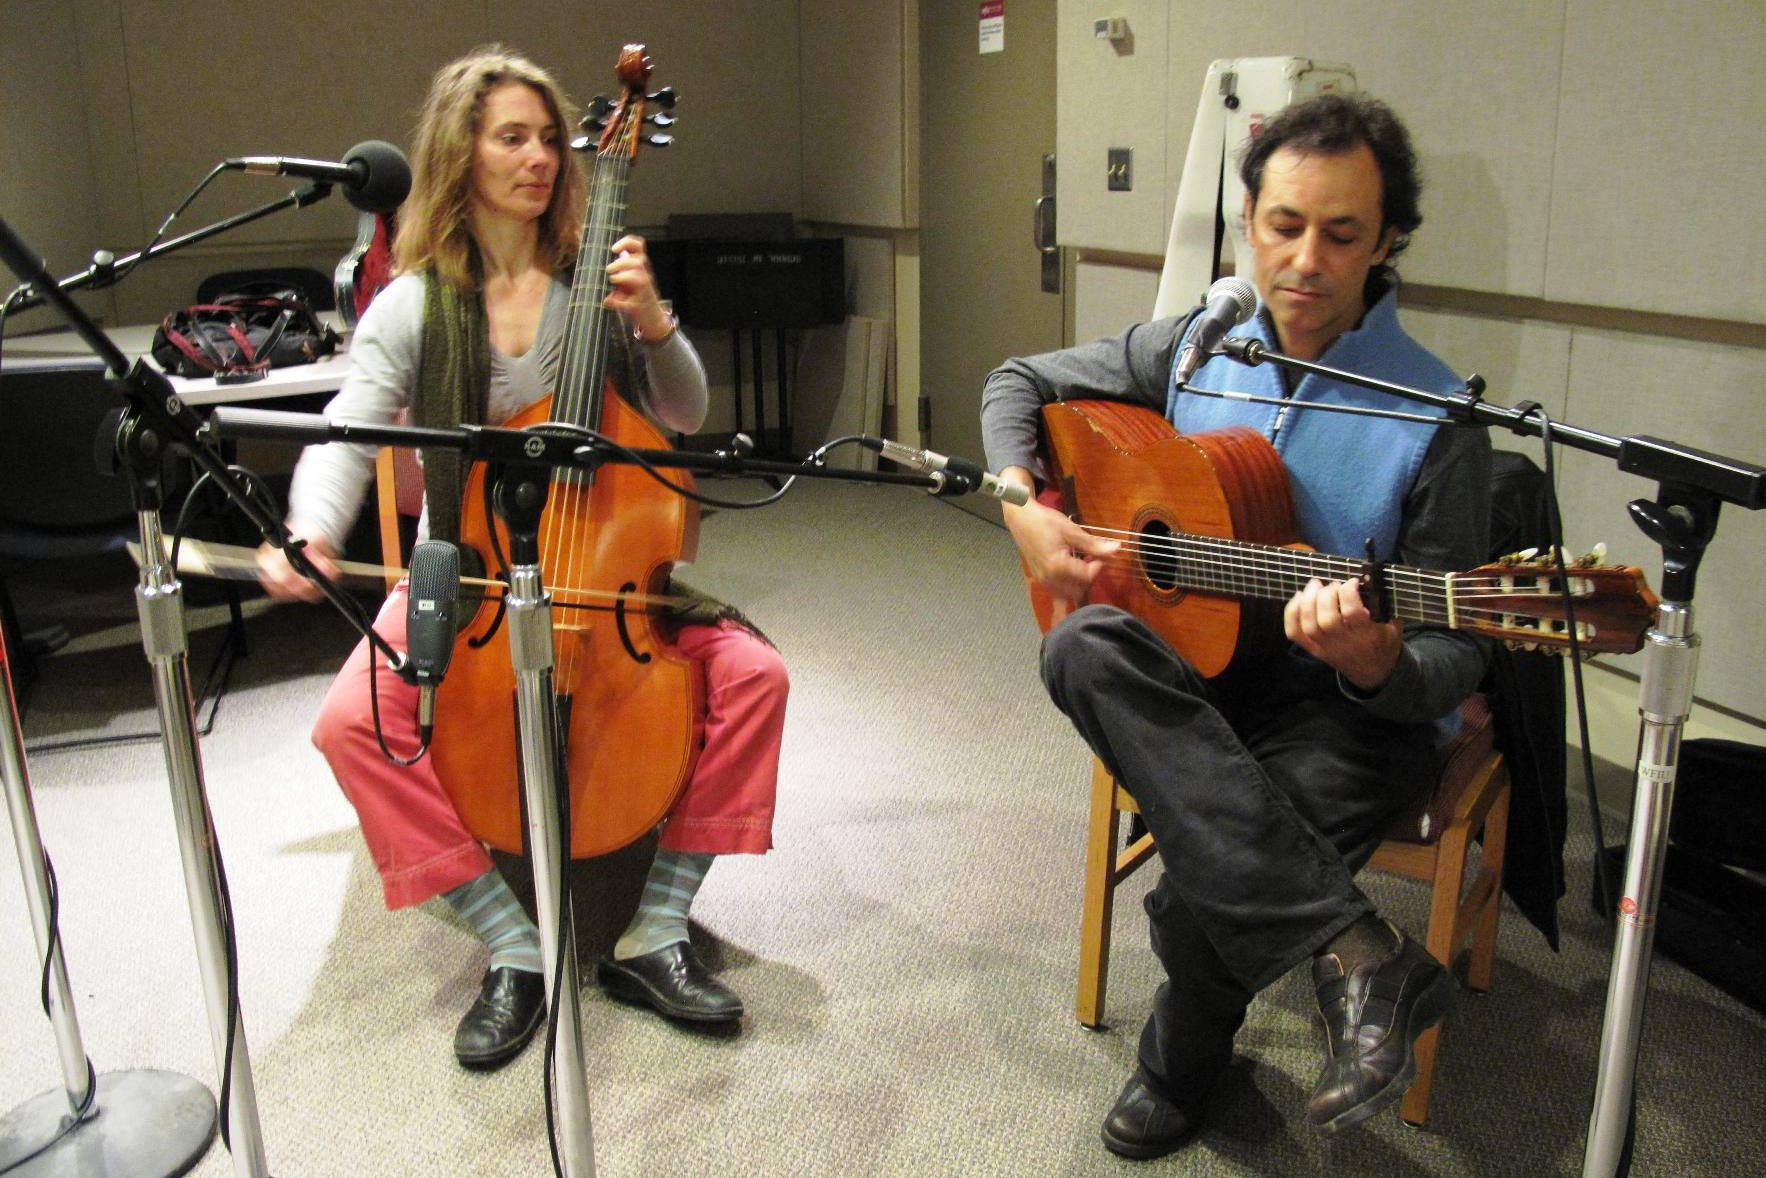 a woman plays a viola da gamba and a man plays a guitar